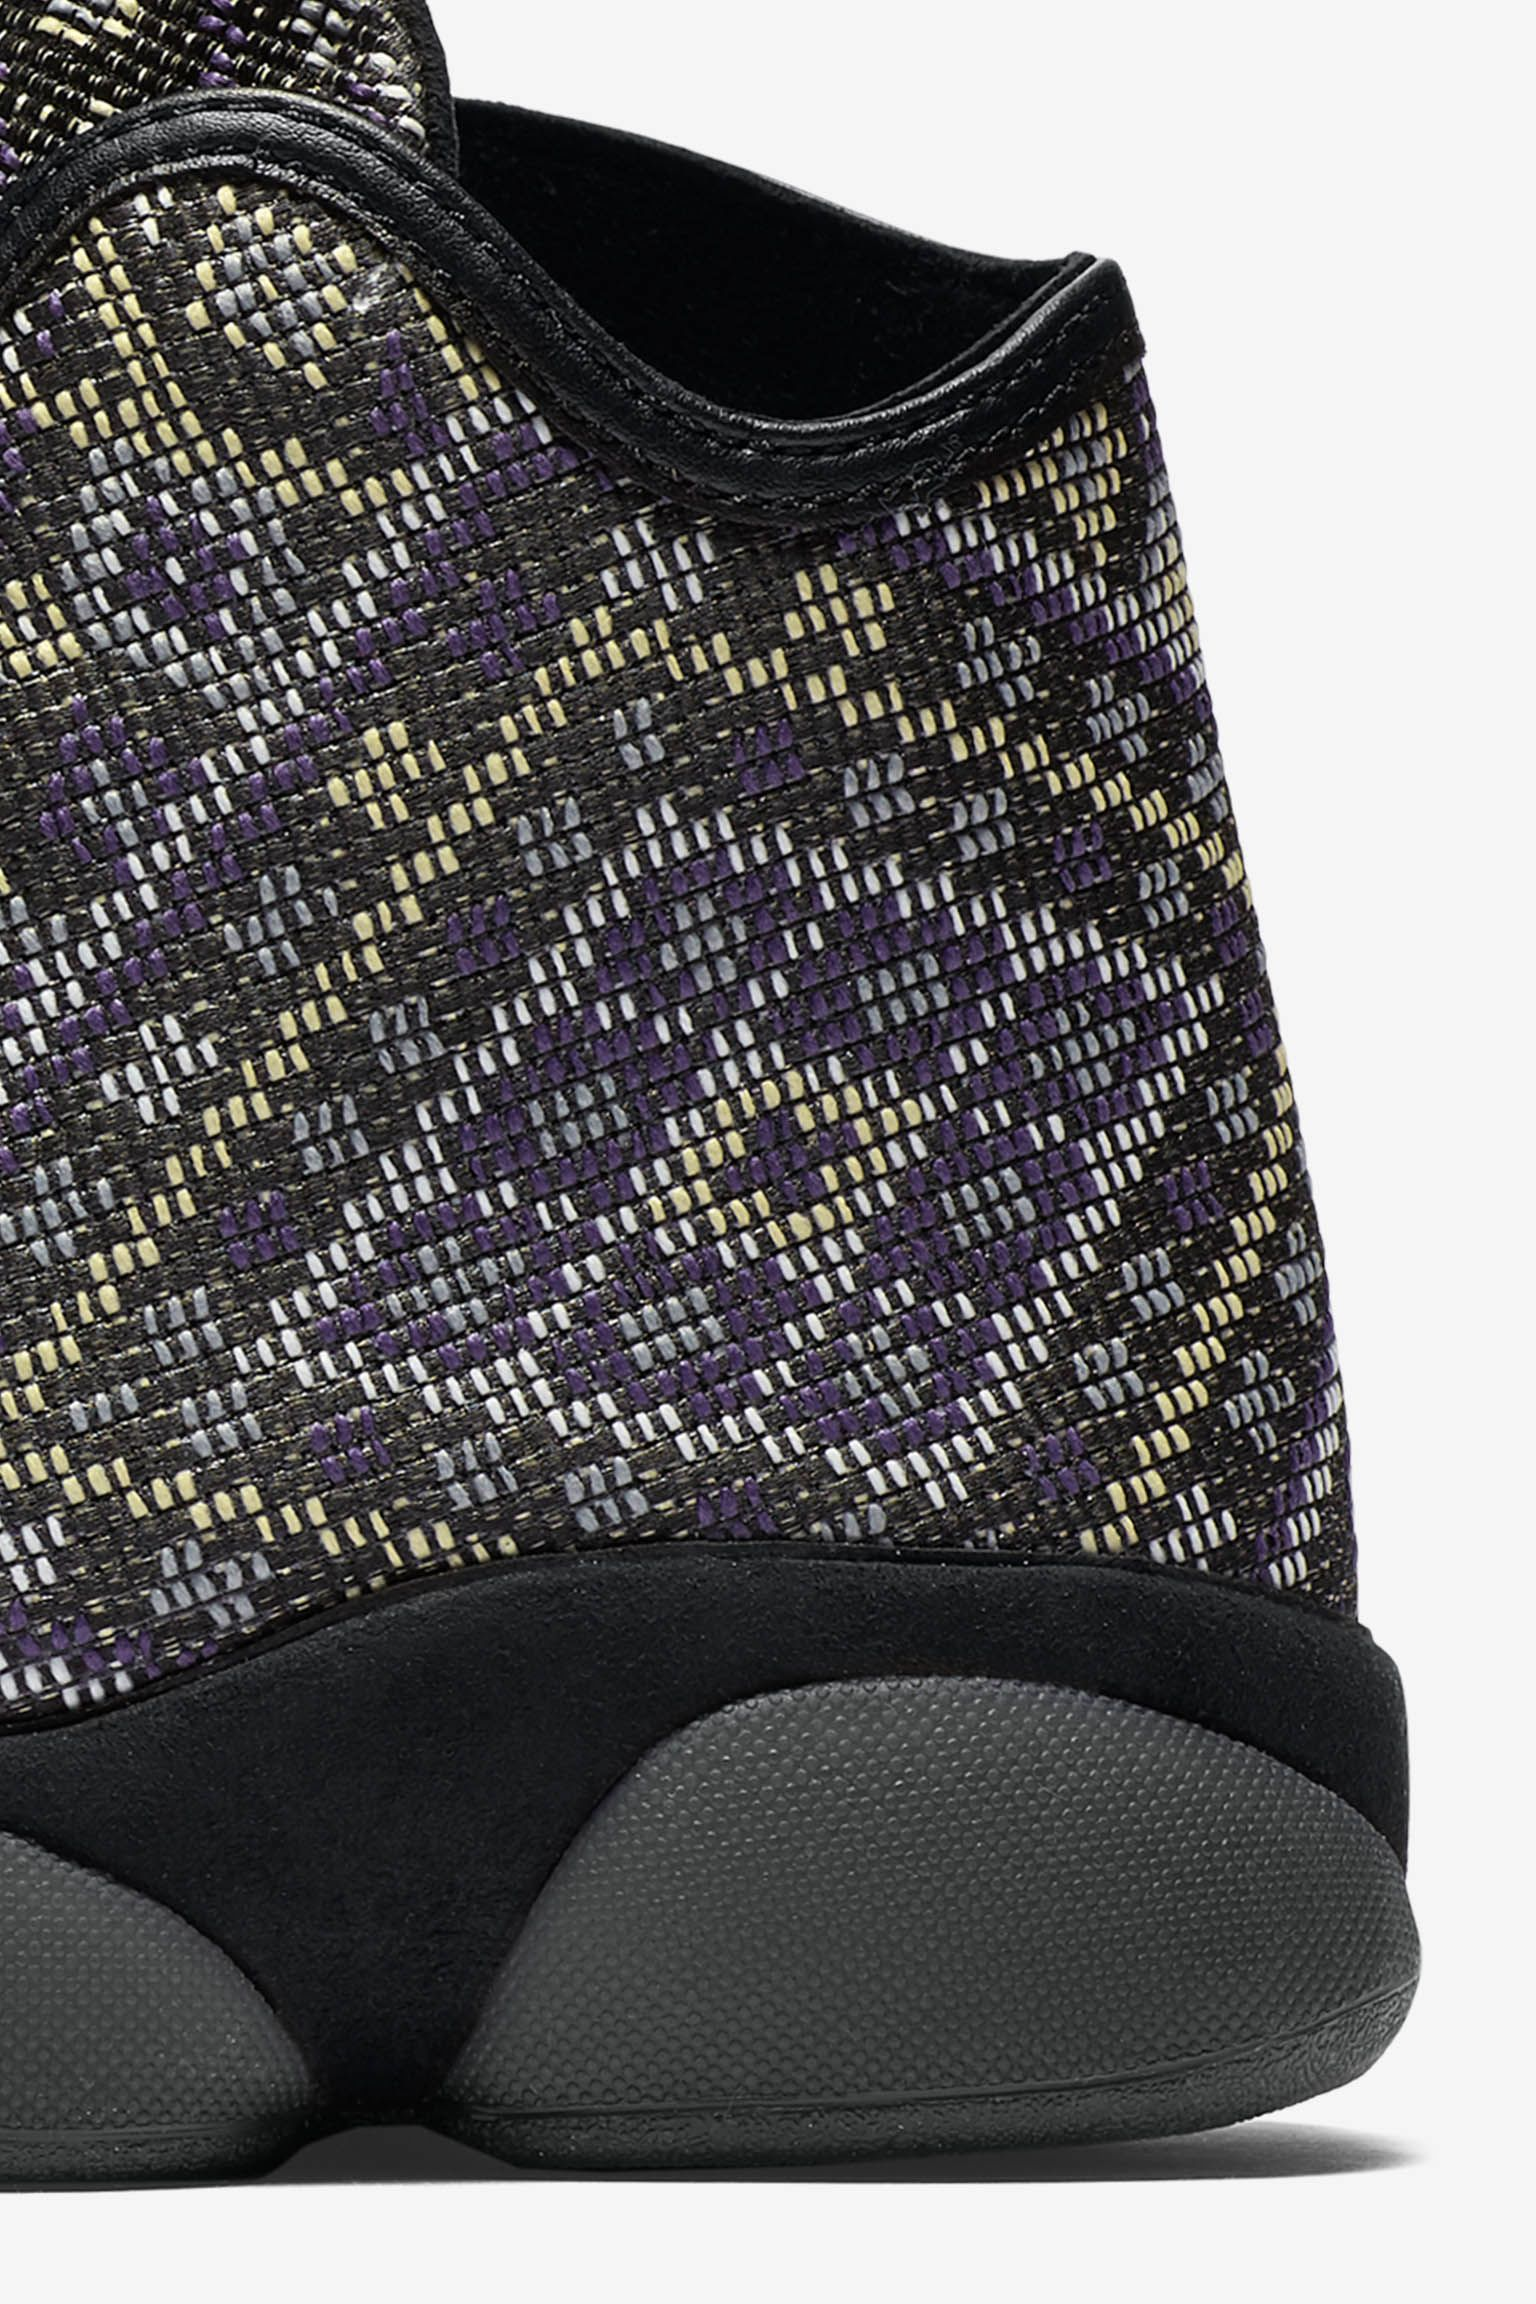 Nike Jordan Horizon 'Black & Purple Steel' Release Date